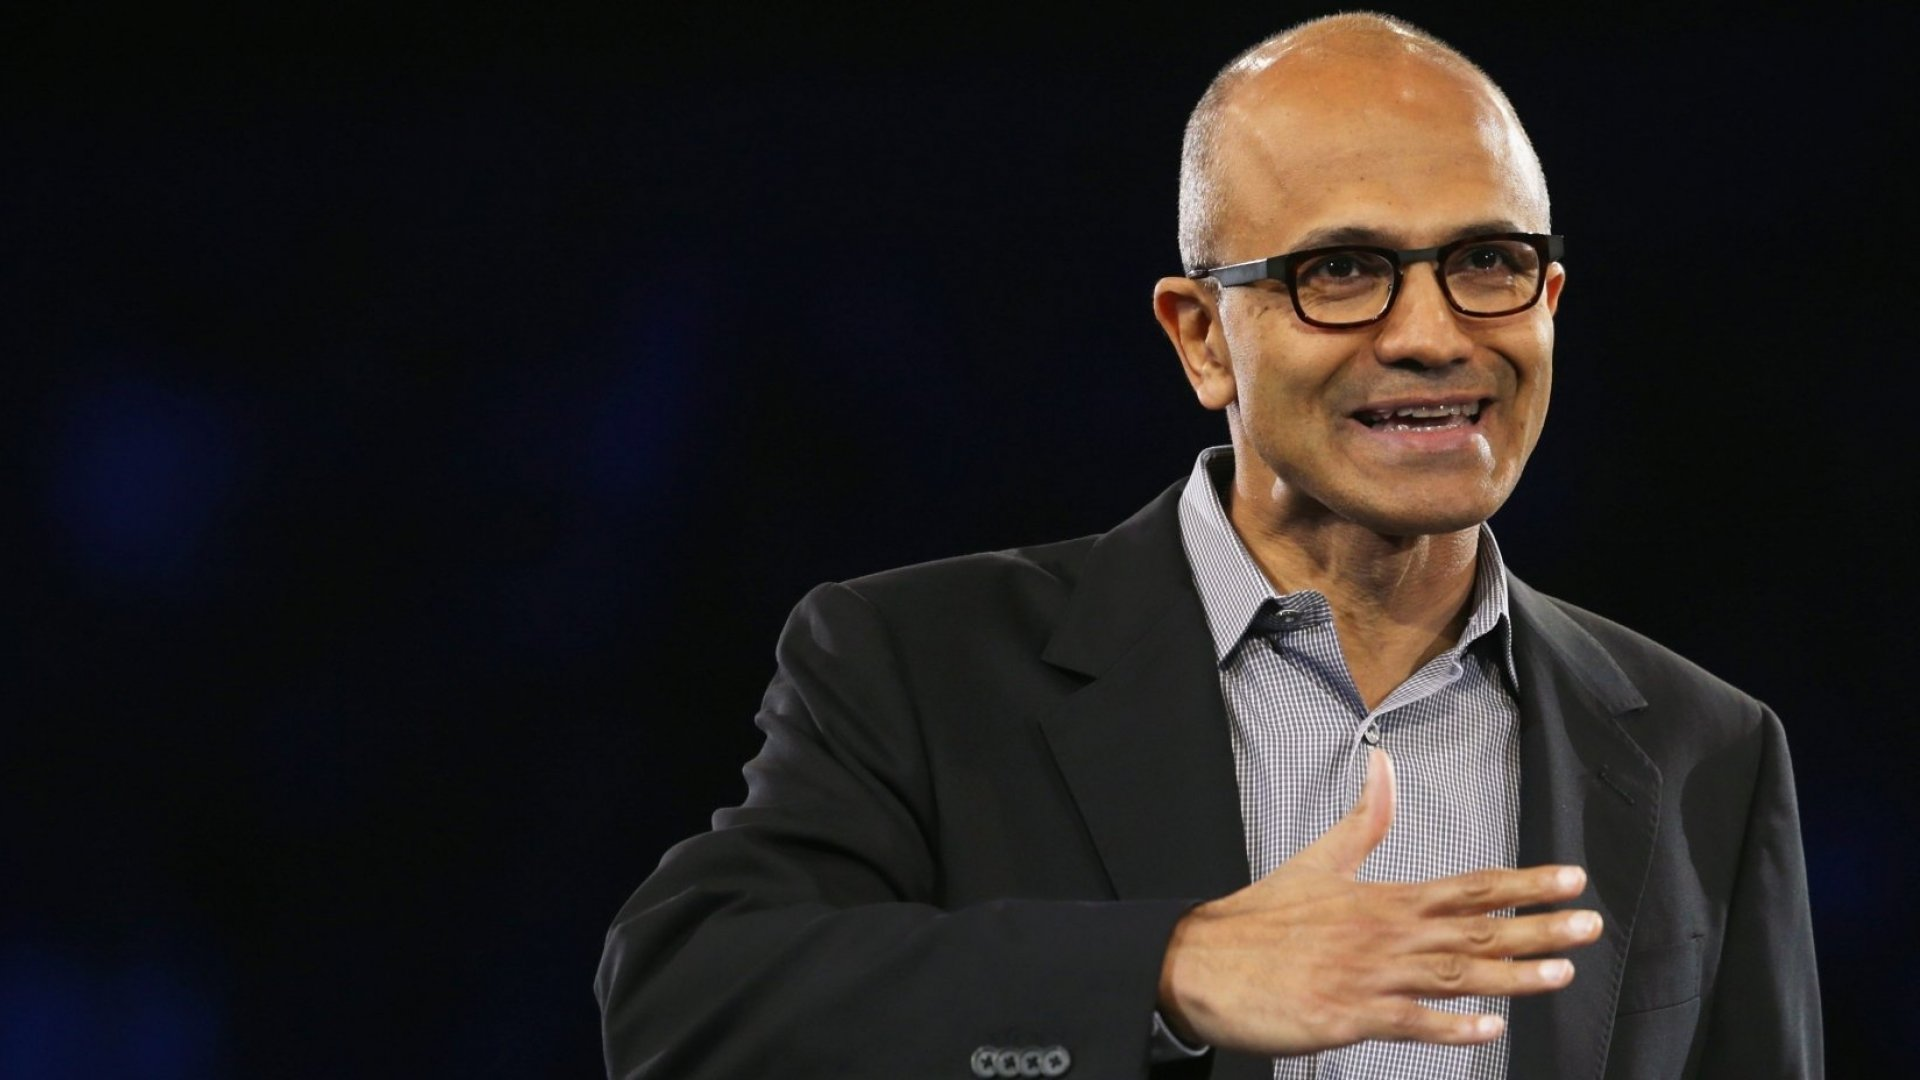 This Video Is How Microsoft CEO Satya Nadella Introduced Himself to an Audience of 17,000 and It Was Perfect